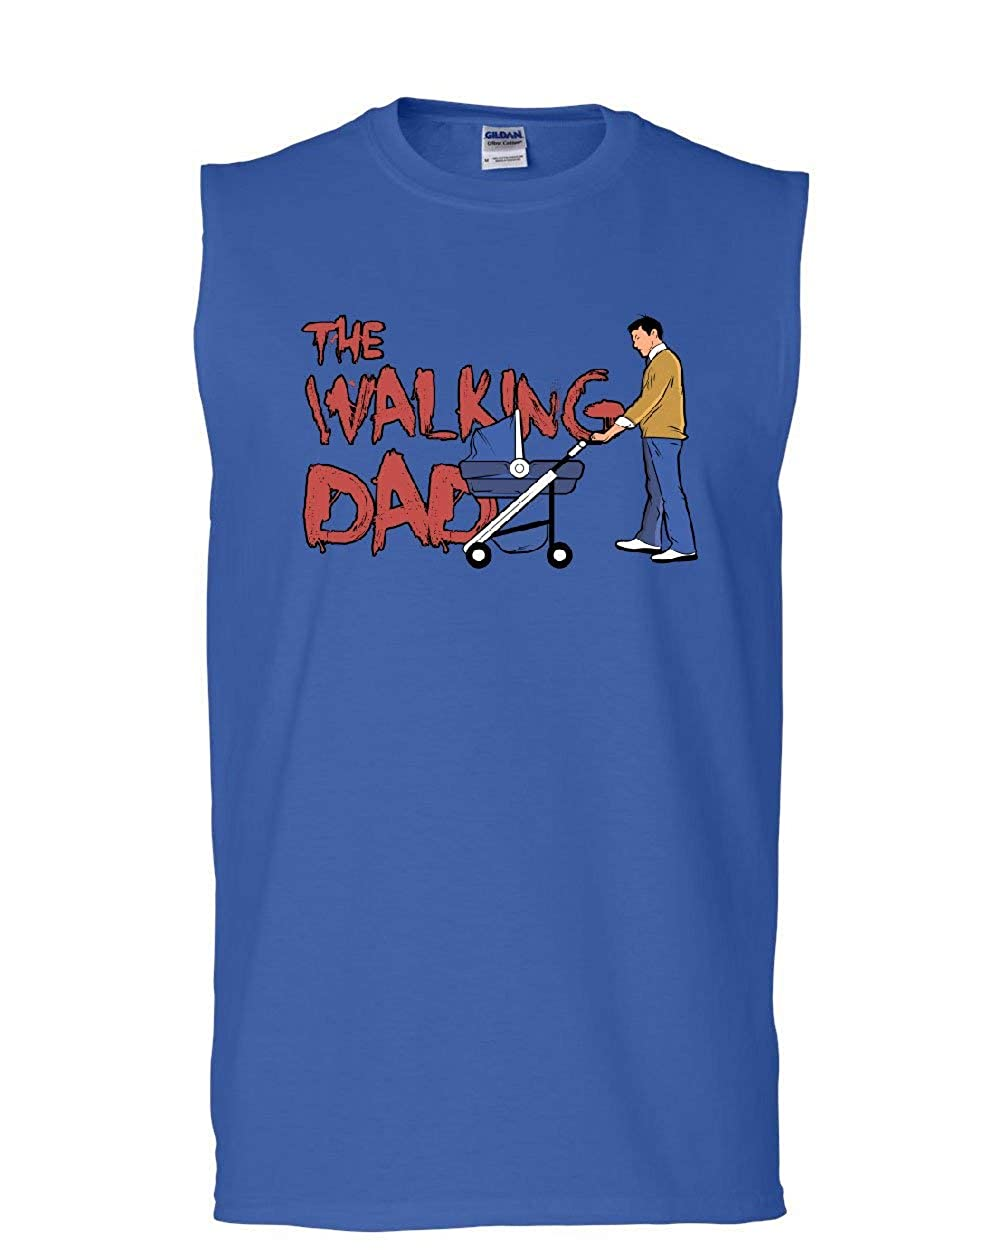 The Walking Dad Muscle Shirt Fathers Day Parody Zombie Apocalypse Sleeveless